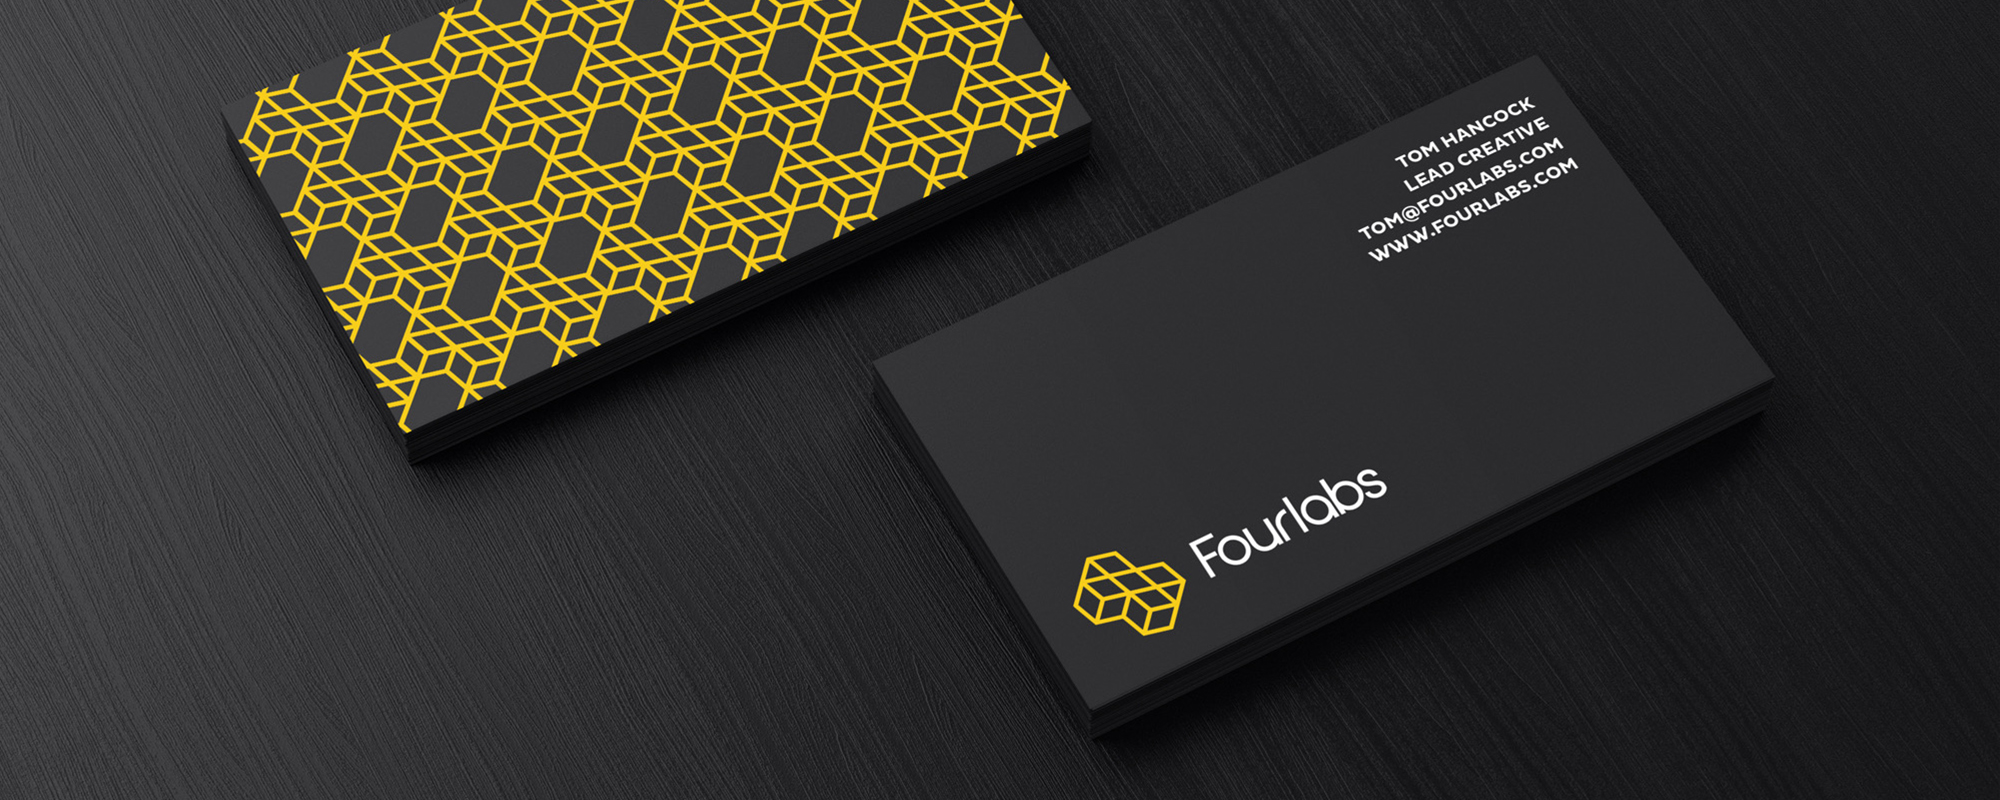 fourlabs business cards